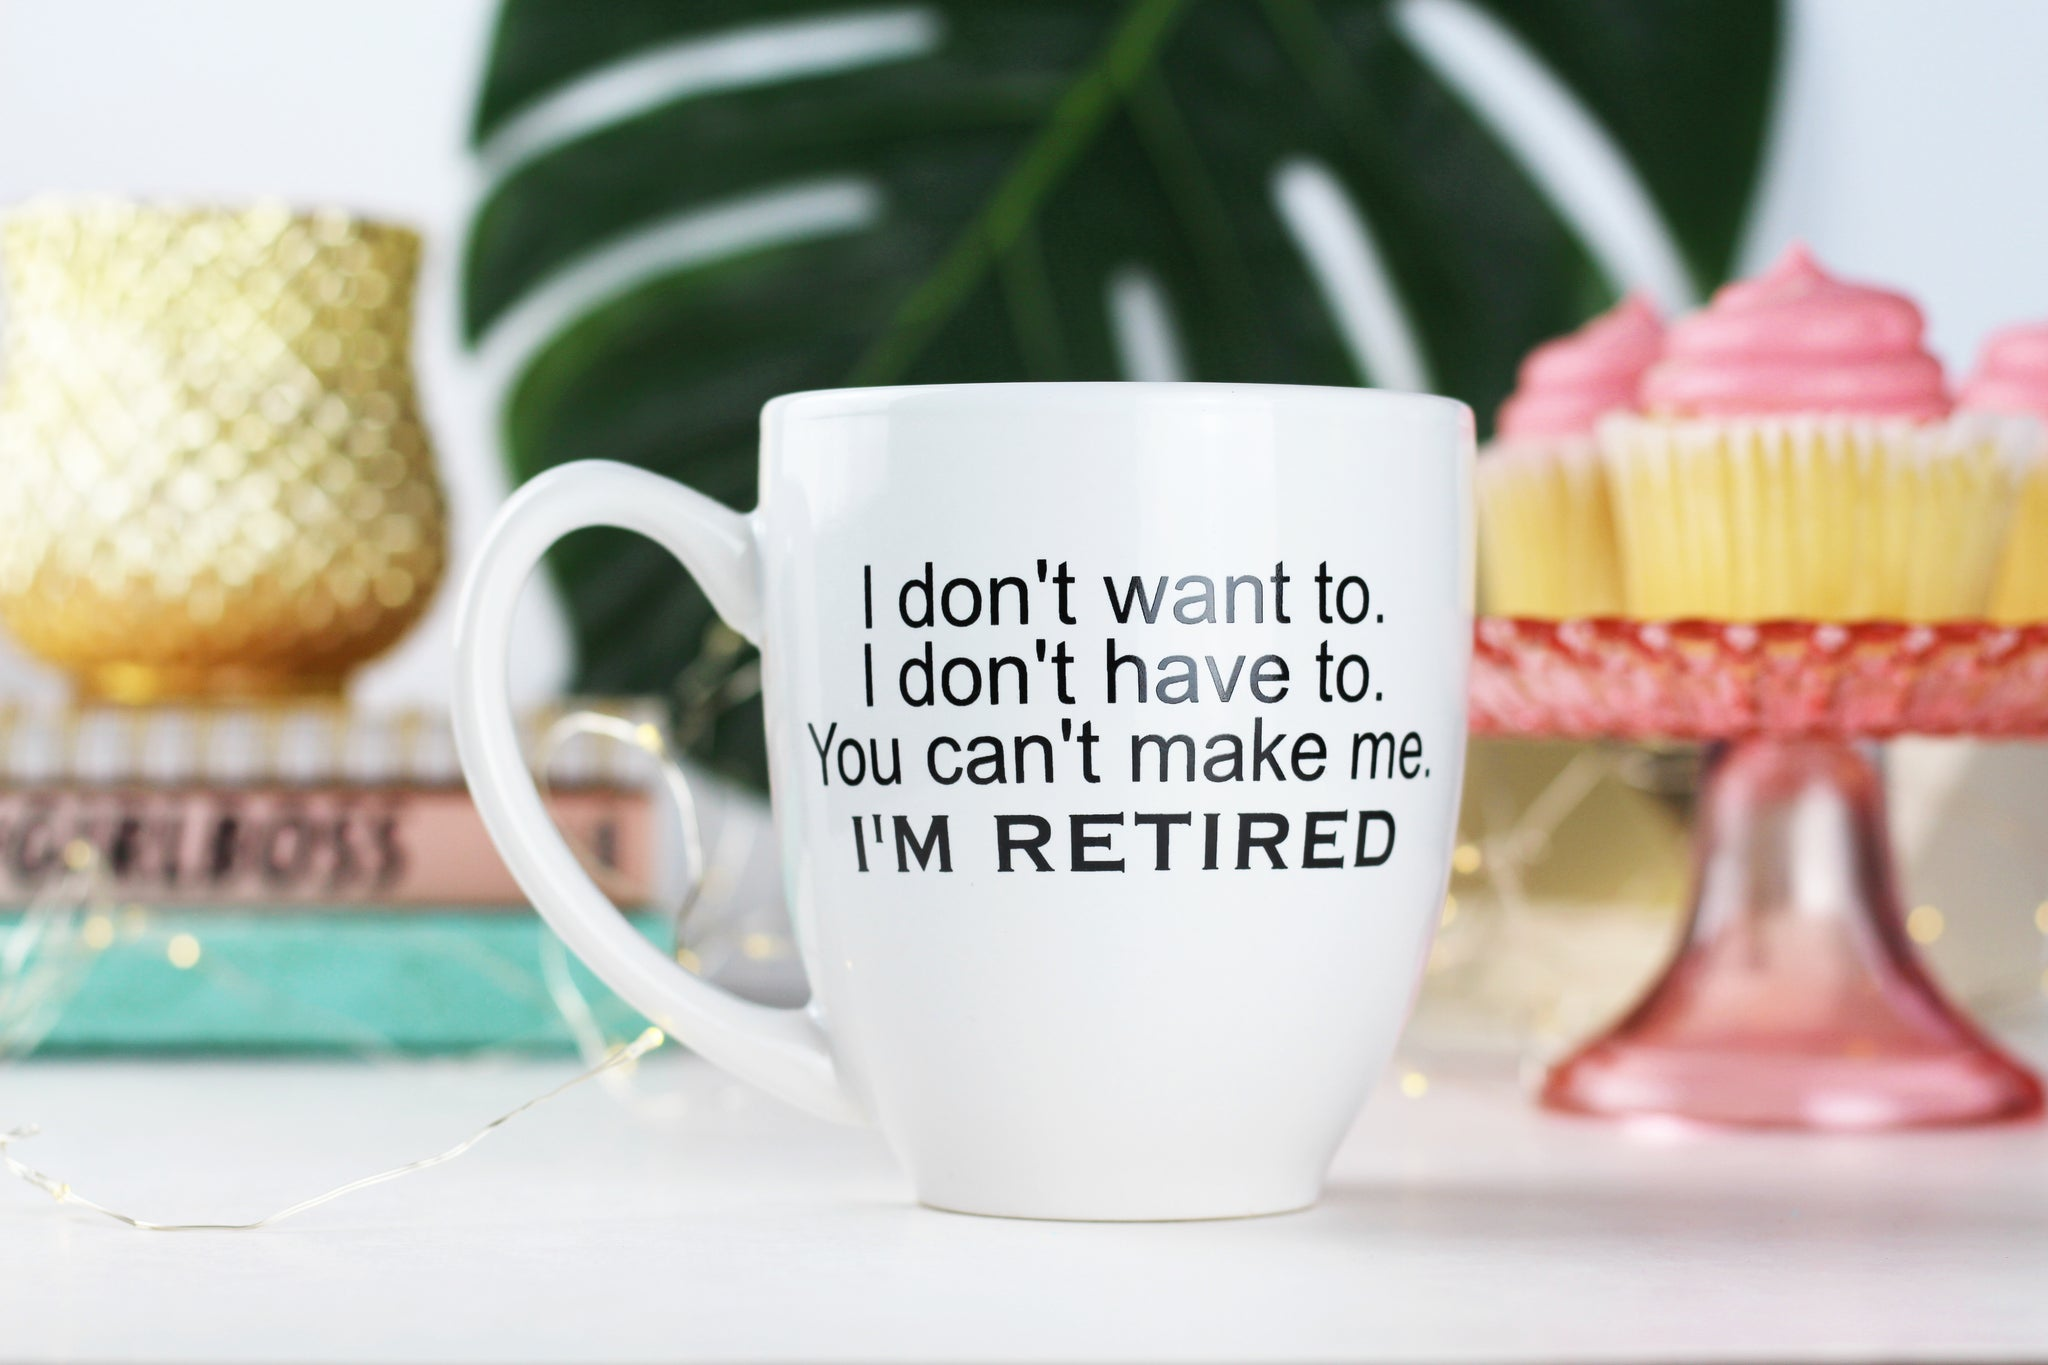 I don't want to. I don't have to. You can't make me. I'm retired